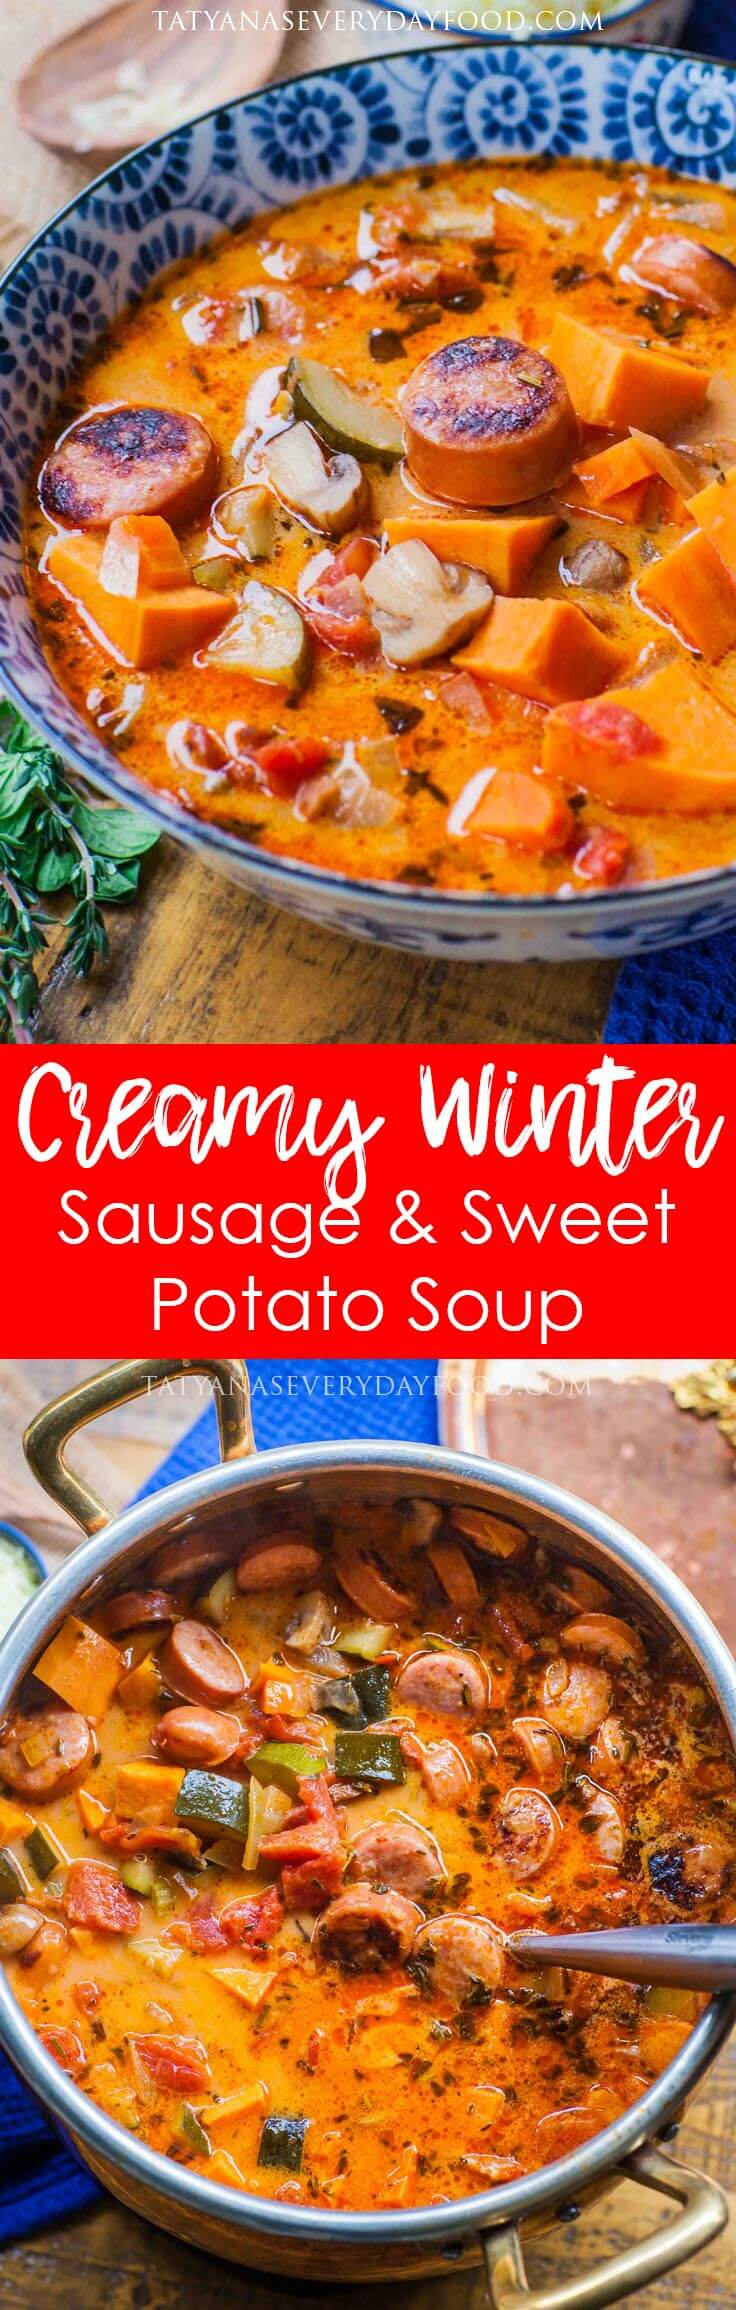 Creamy Sausage & Sweet Potato Soup recipe